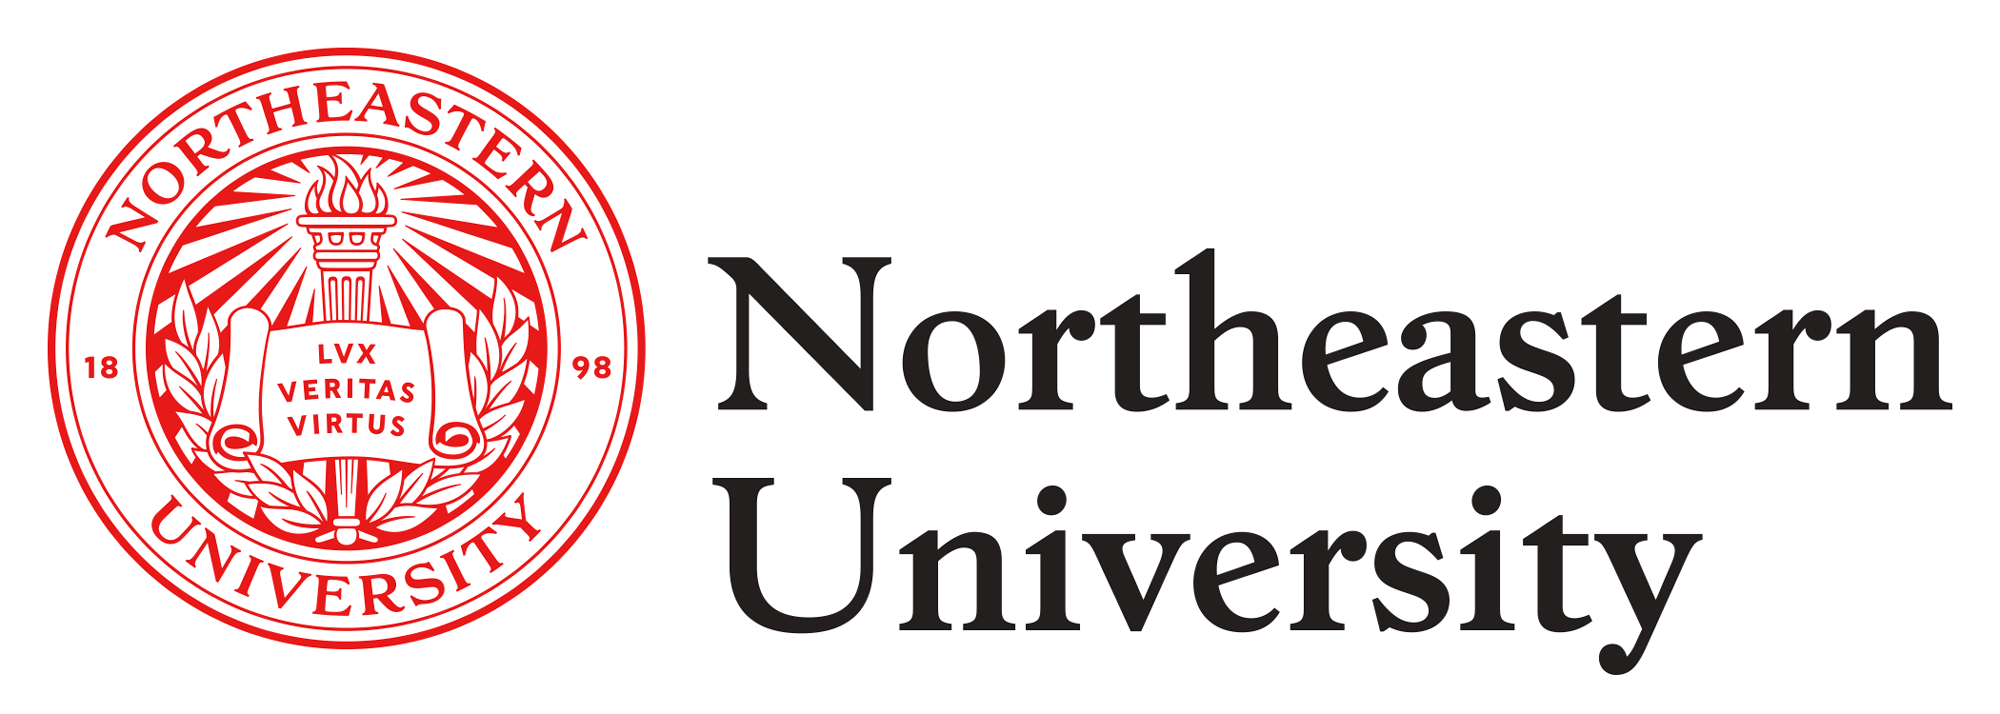 Northeastern universitylogo